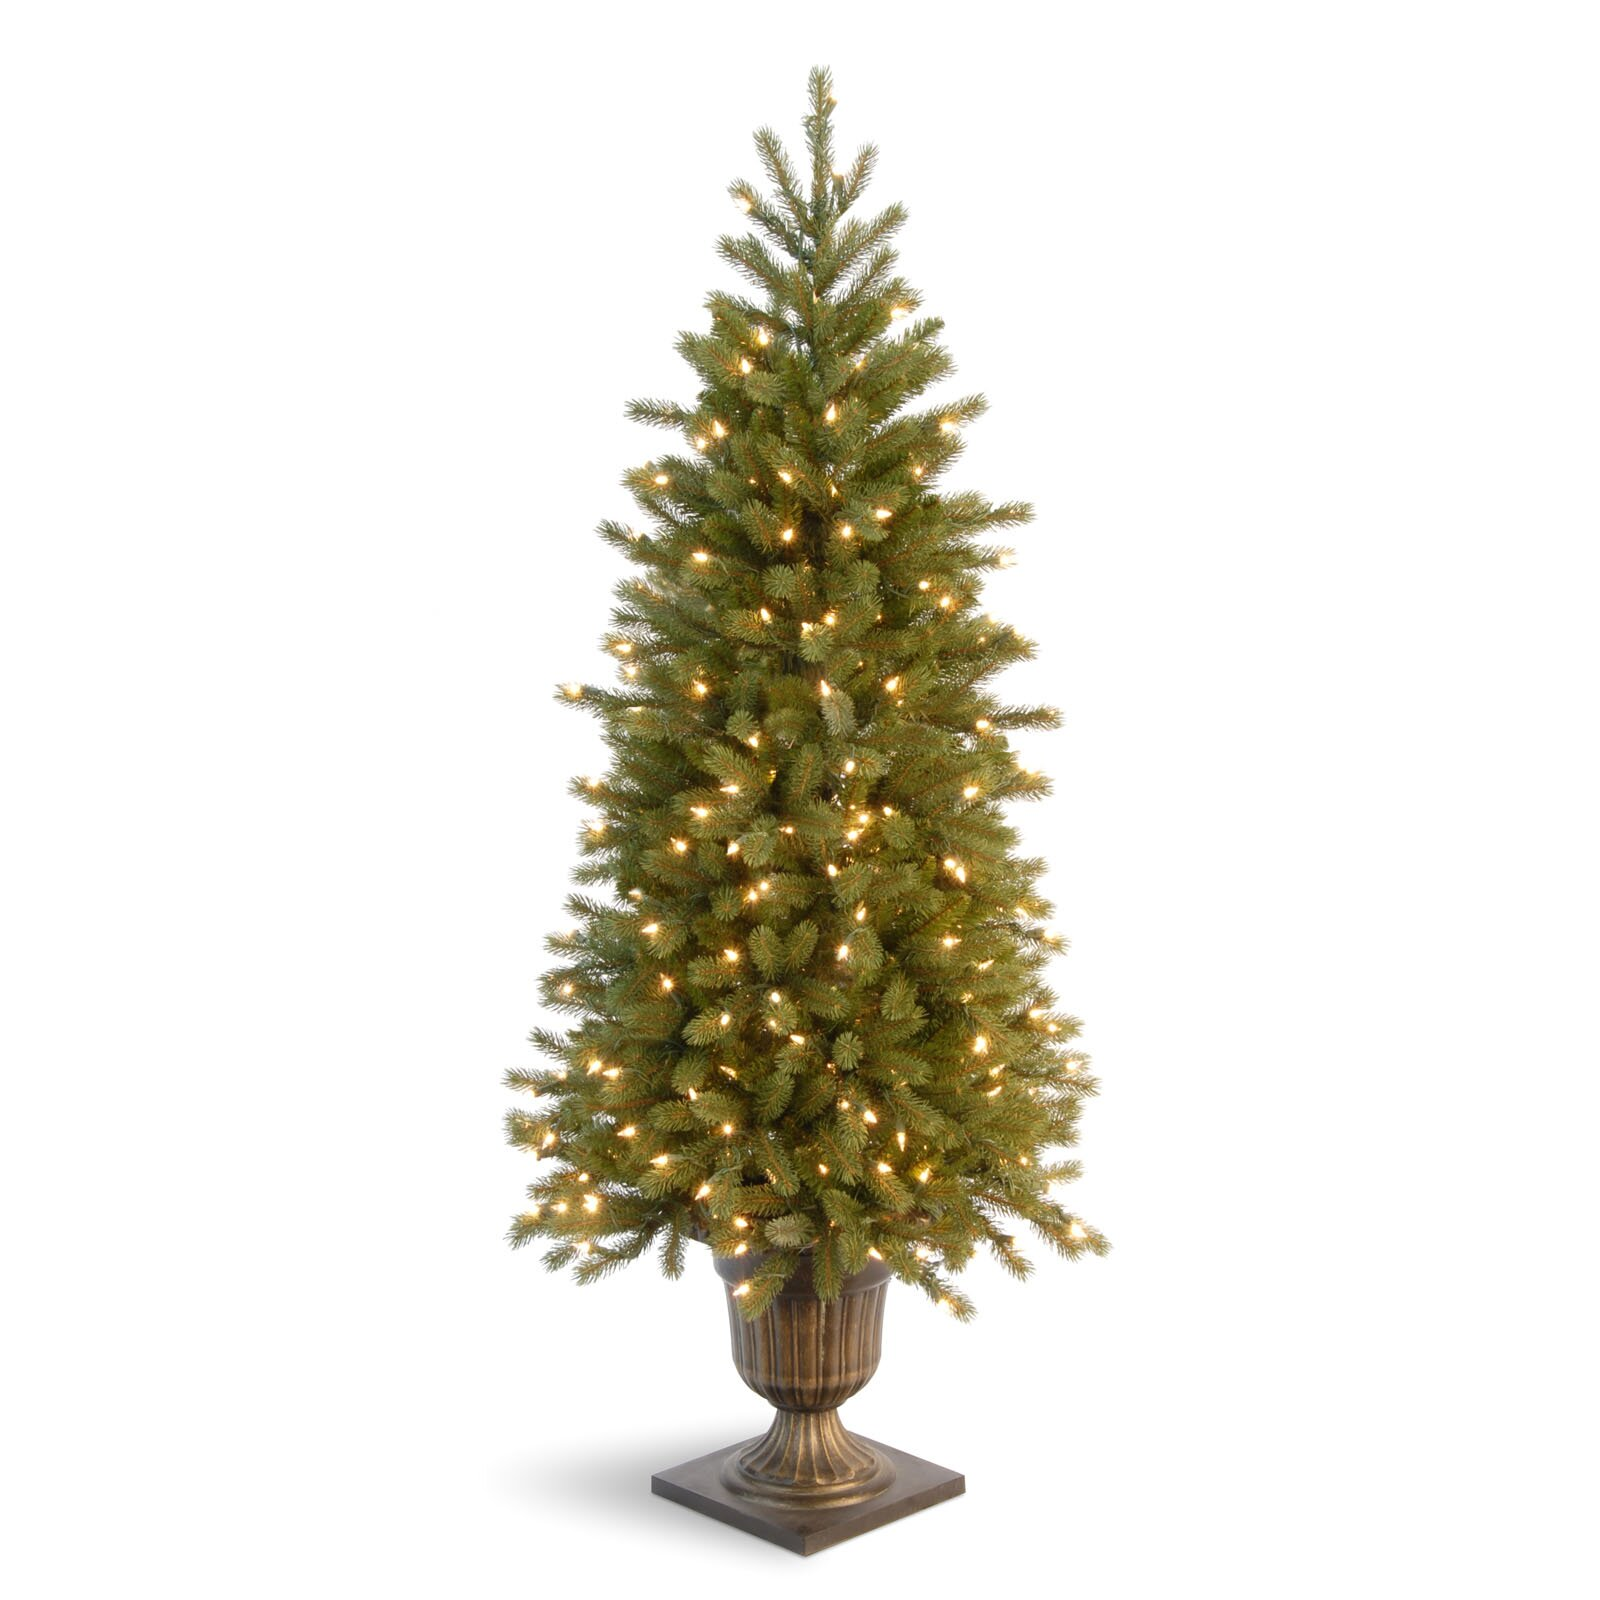 Fraser Fir Christmas Trees: Jersey Fraser Fir 4' Green Entrance Artificial Christmas